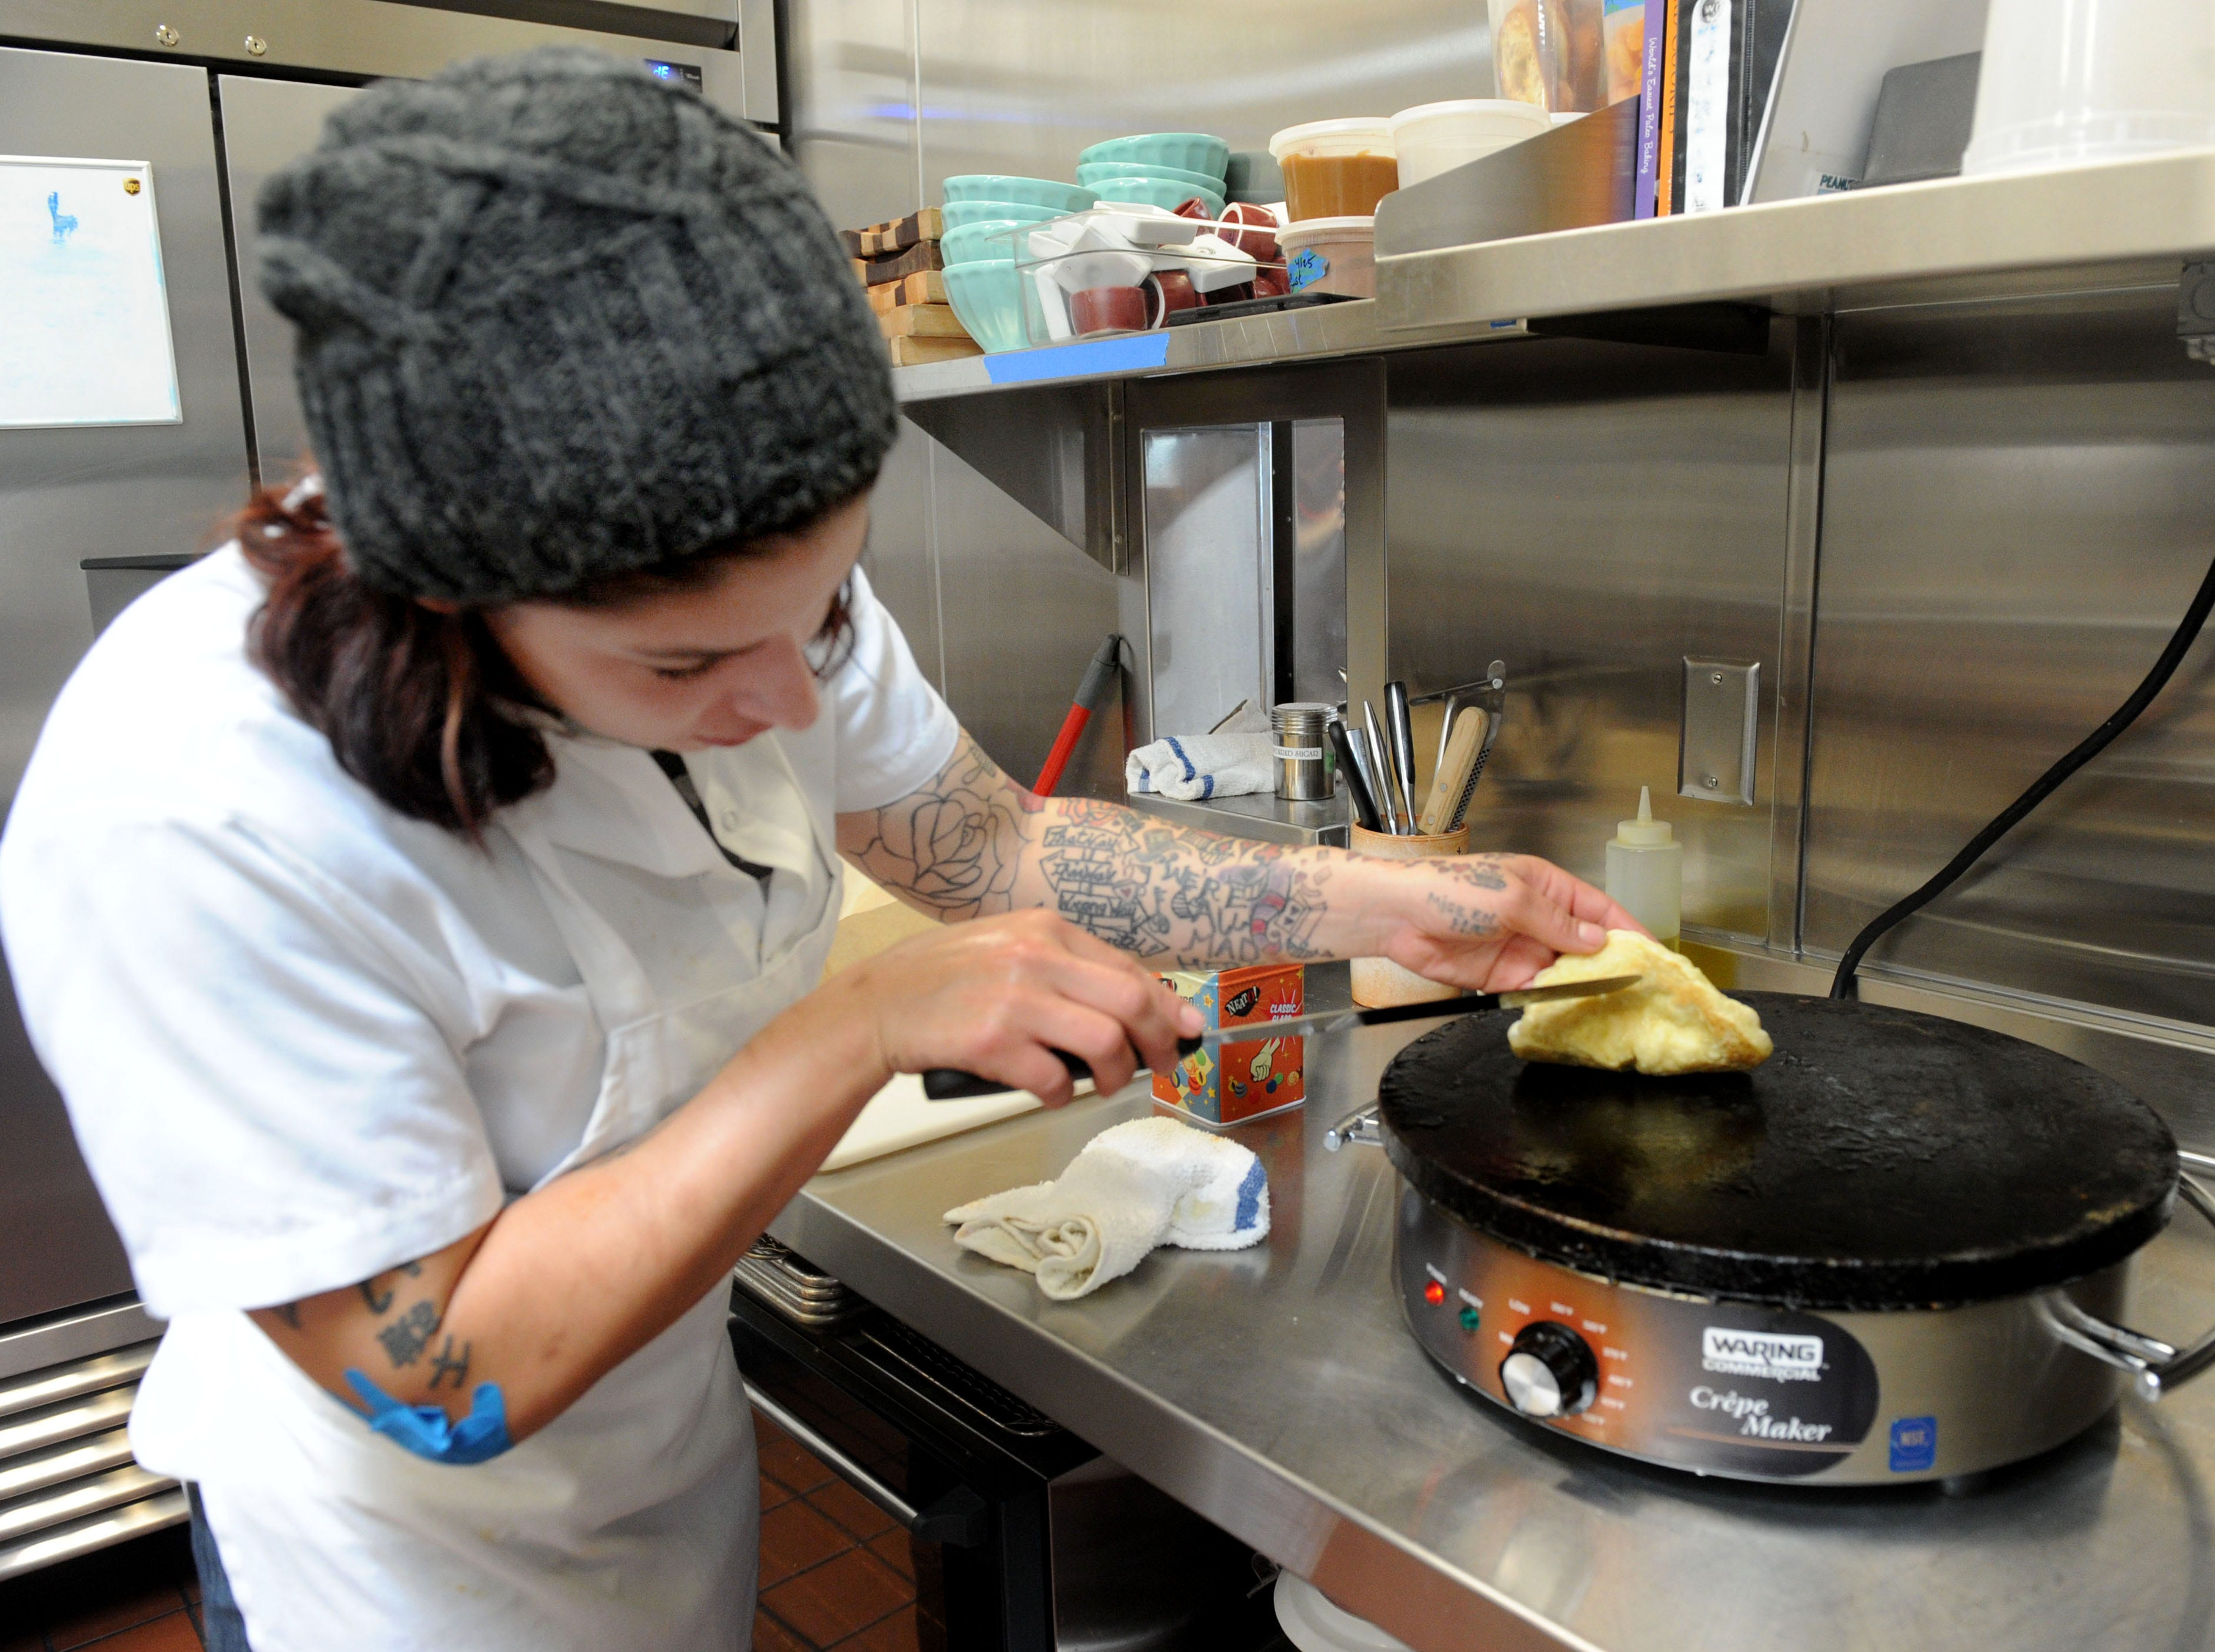 Frankie Lopez, commis chef at Sage Mindful Meals and Elixirs in Ojai, makes naan bread.